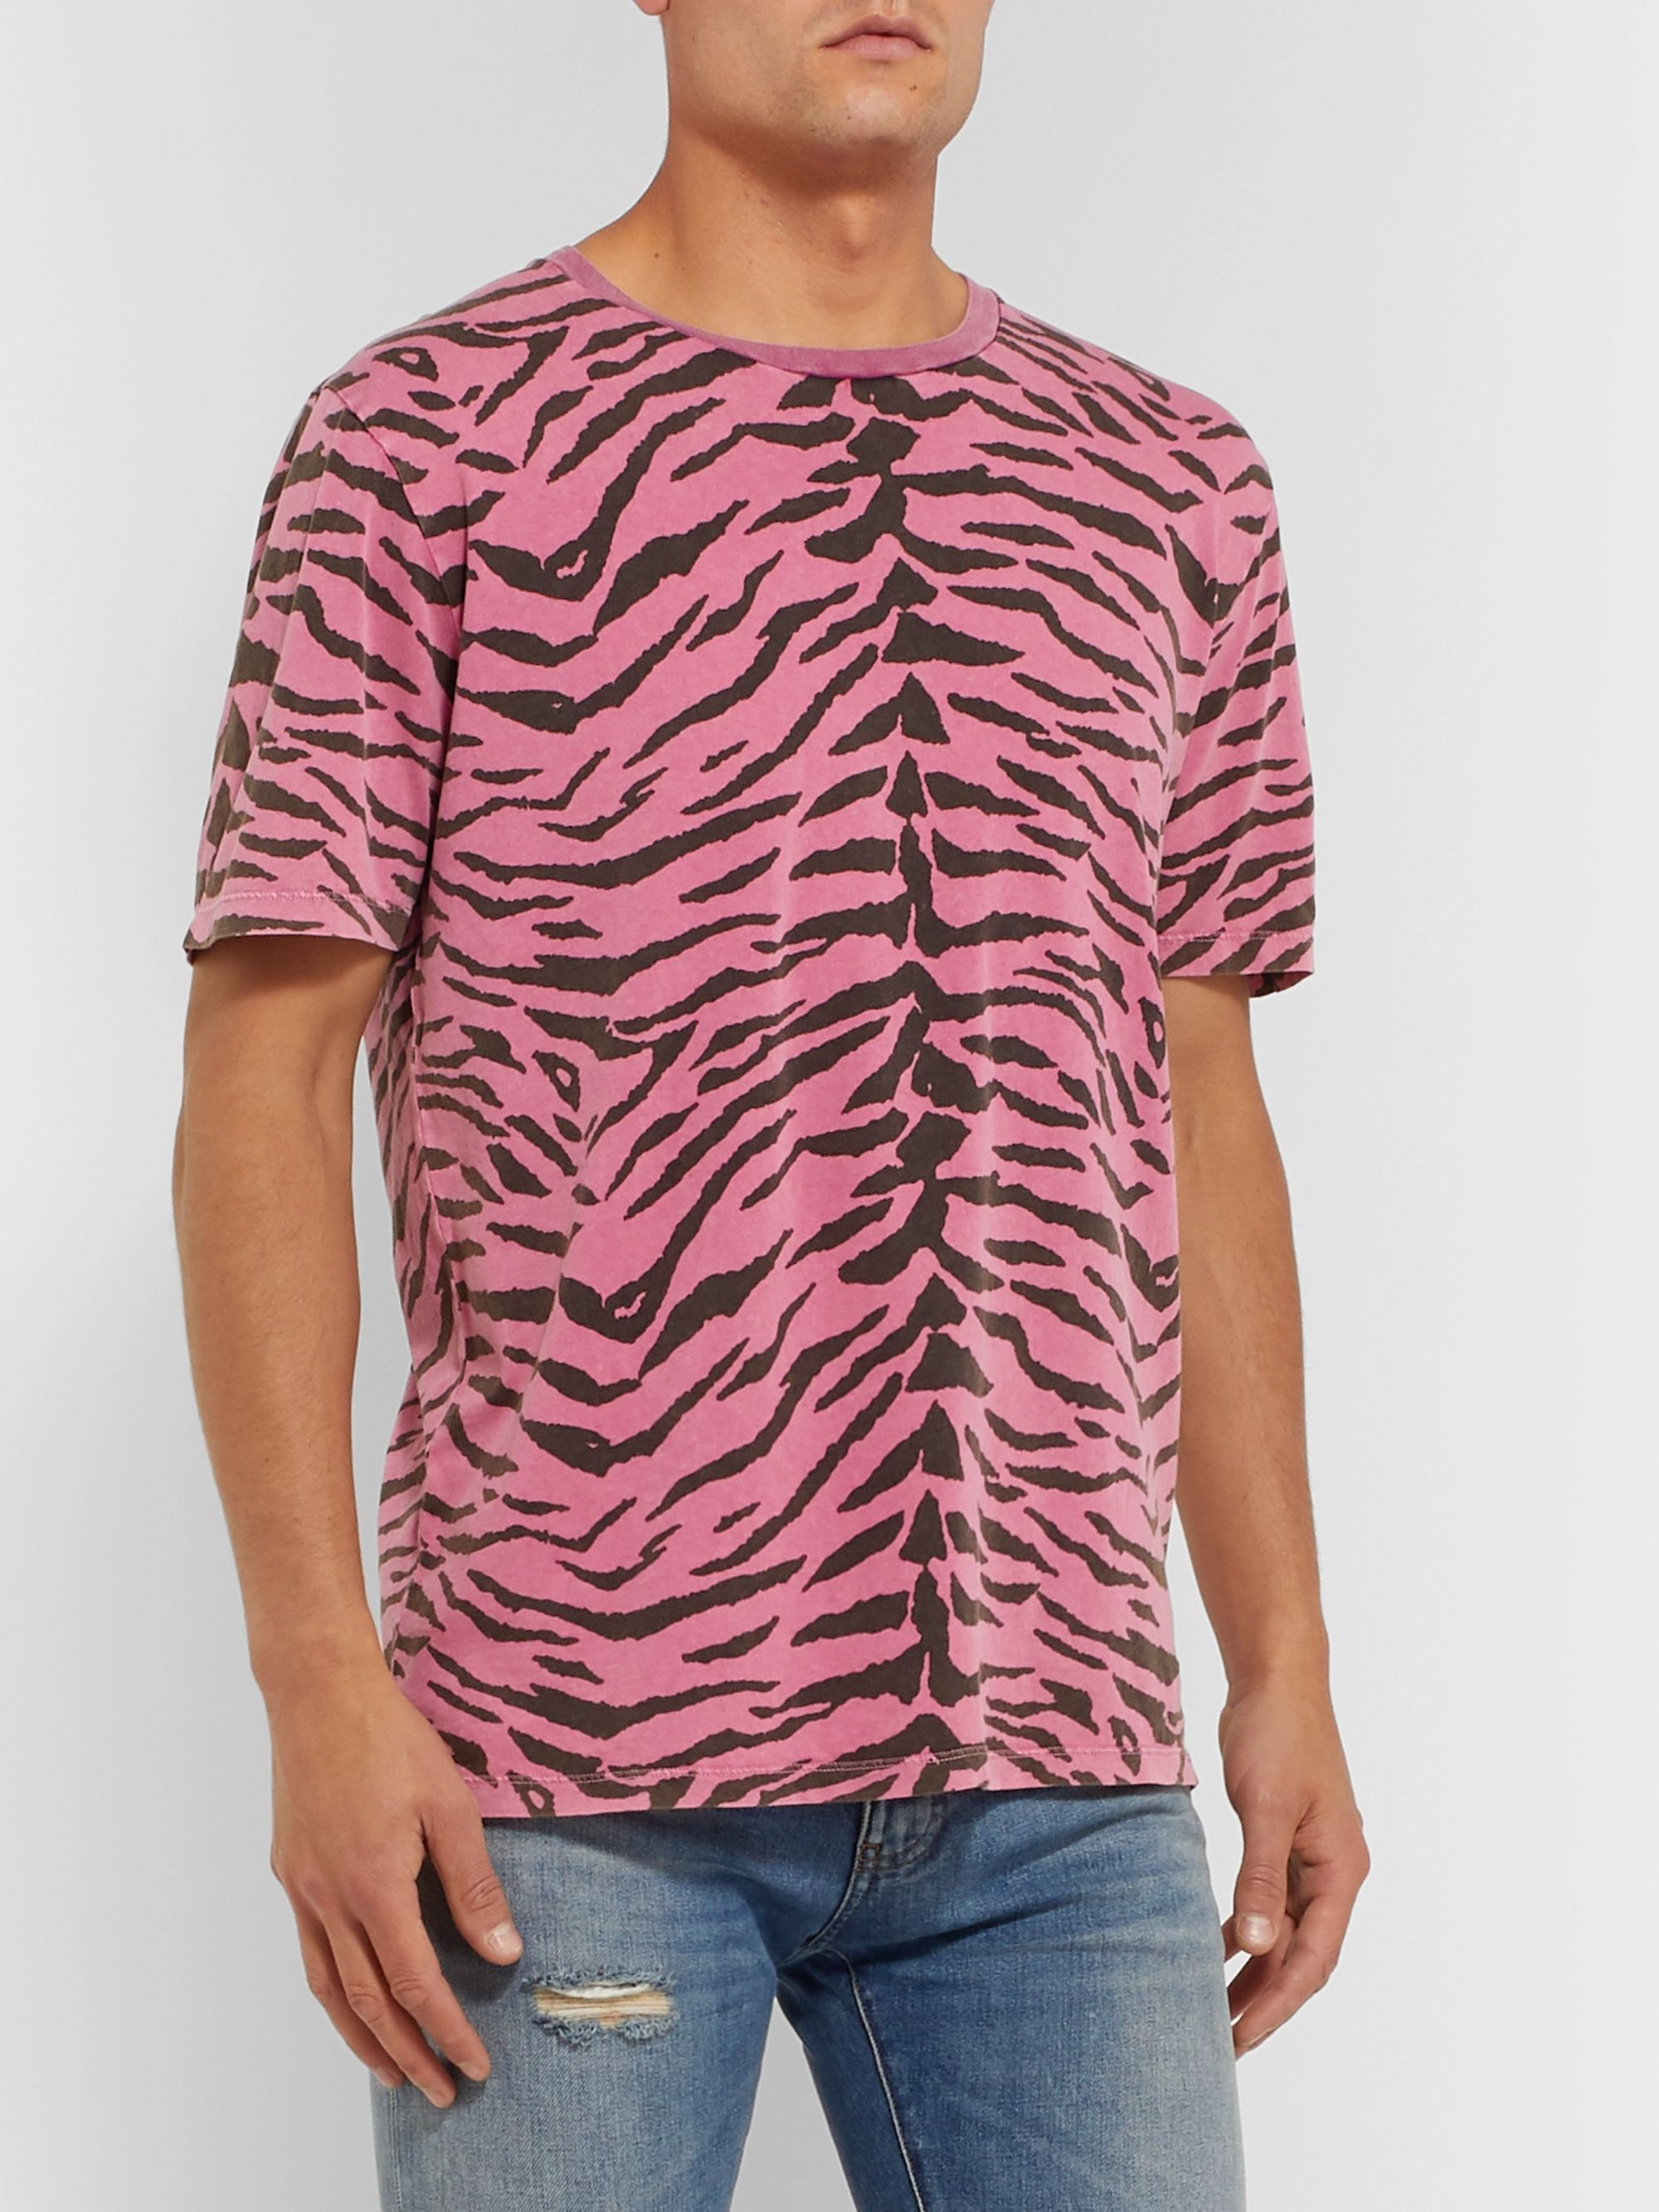 SAINT LAURENT Zebra-Print Cotton-Jersey T-Shirt